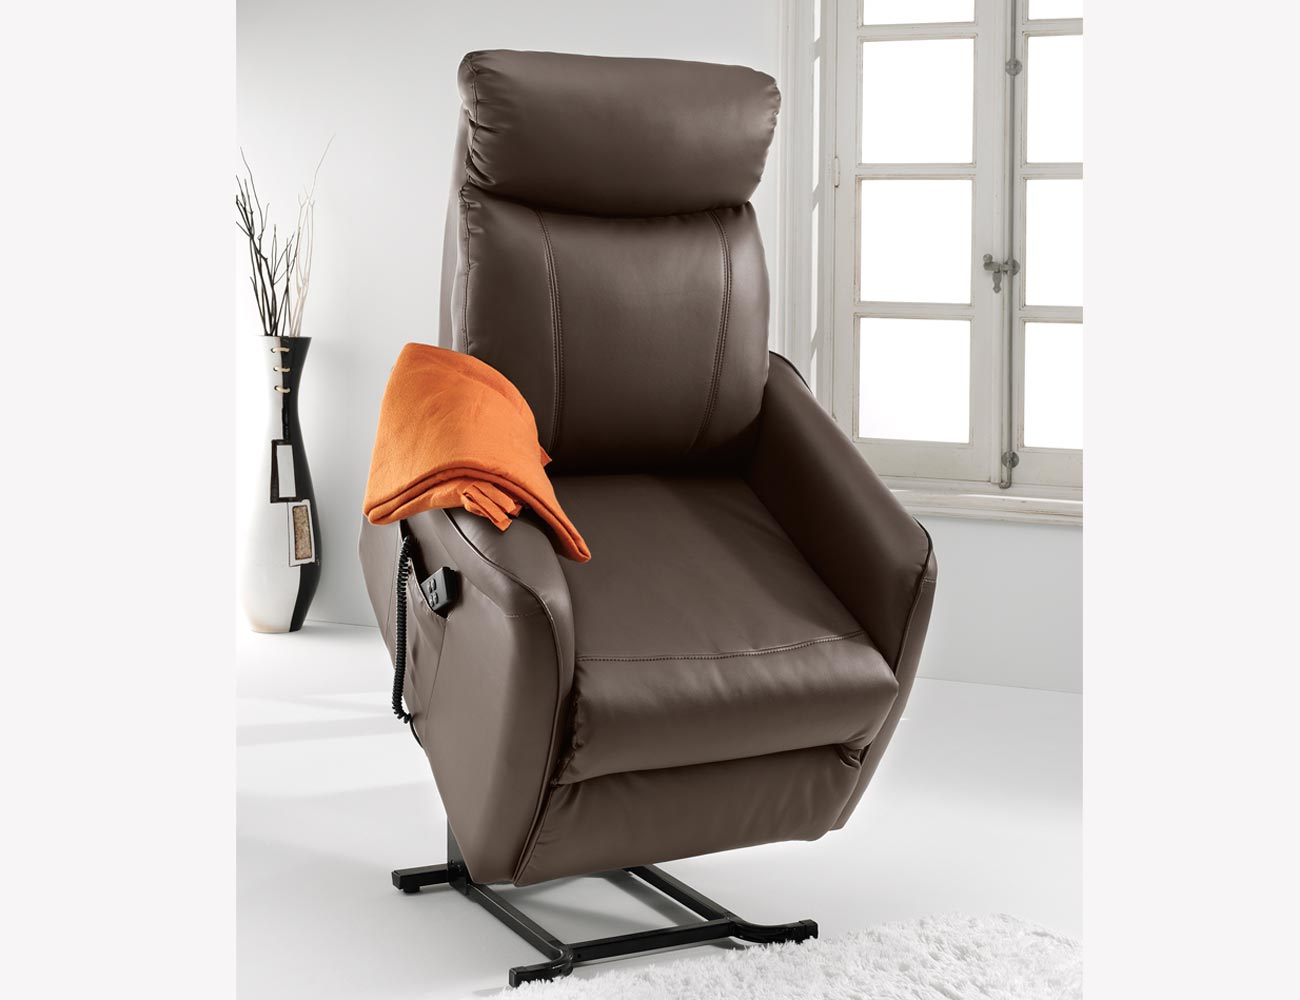 Sillon relax dos motores power lift levanta personas simil piel 21